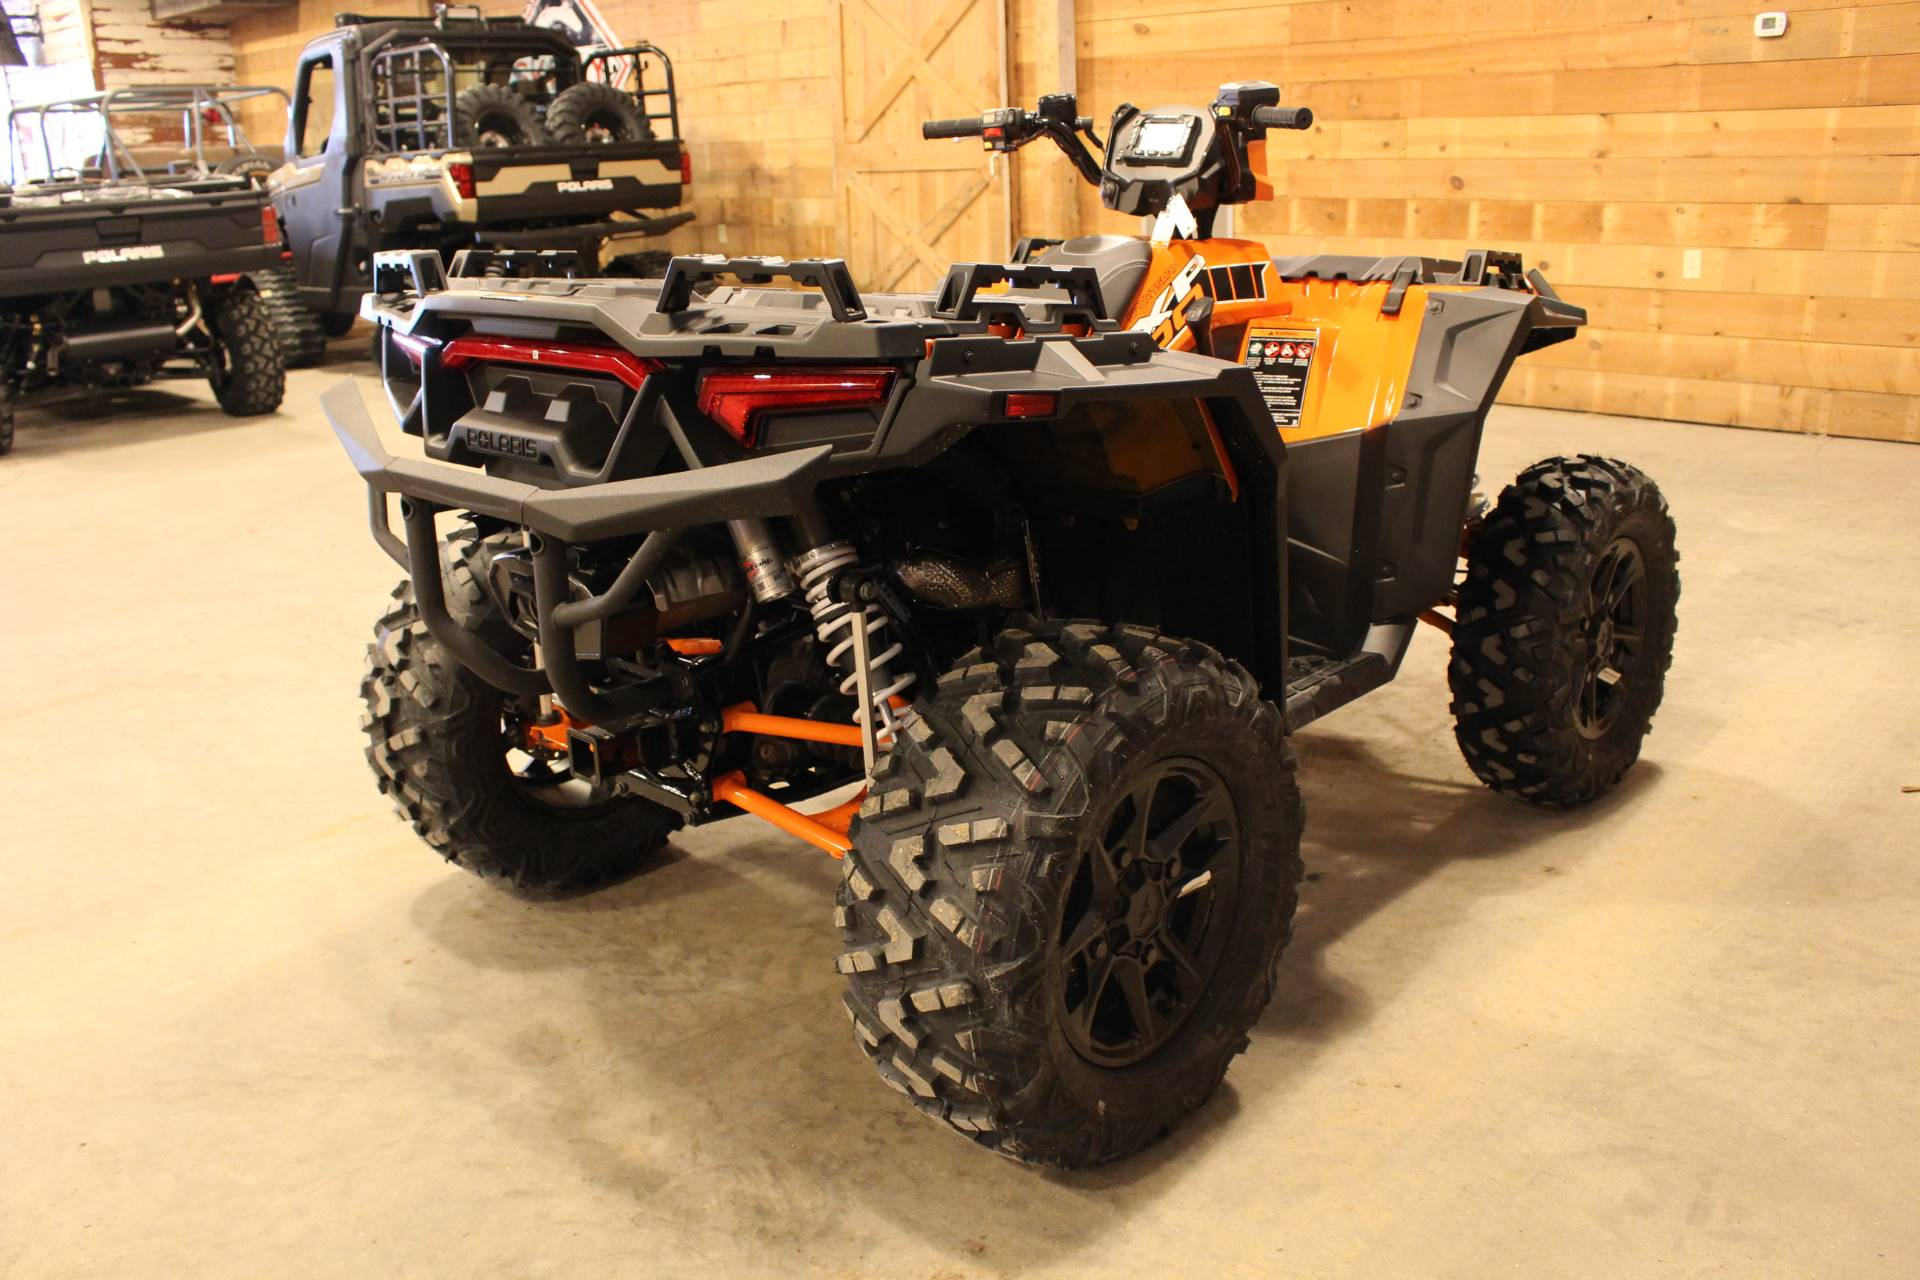 2020 Polaris Sportsman XP 1000 S in Valentine, Nebraska - Photo 6